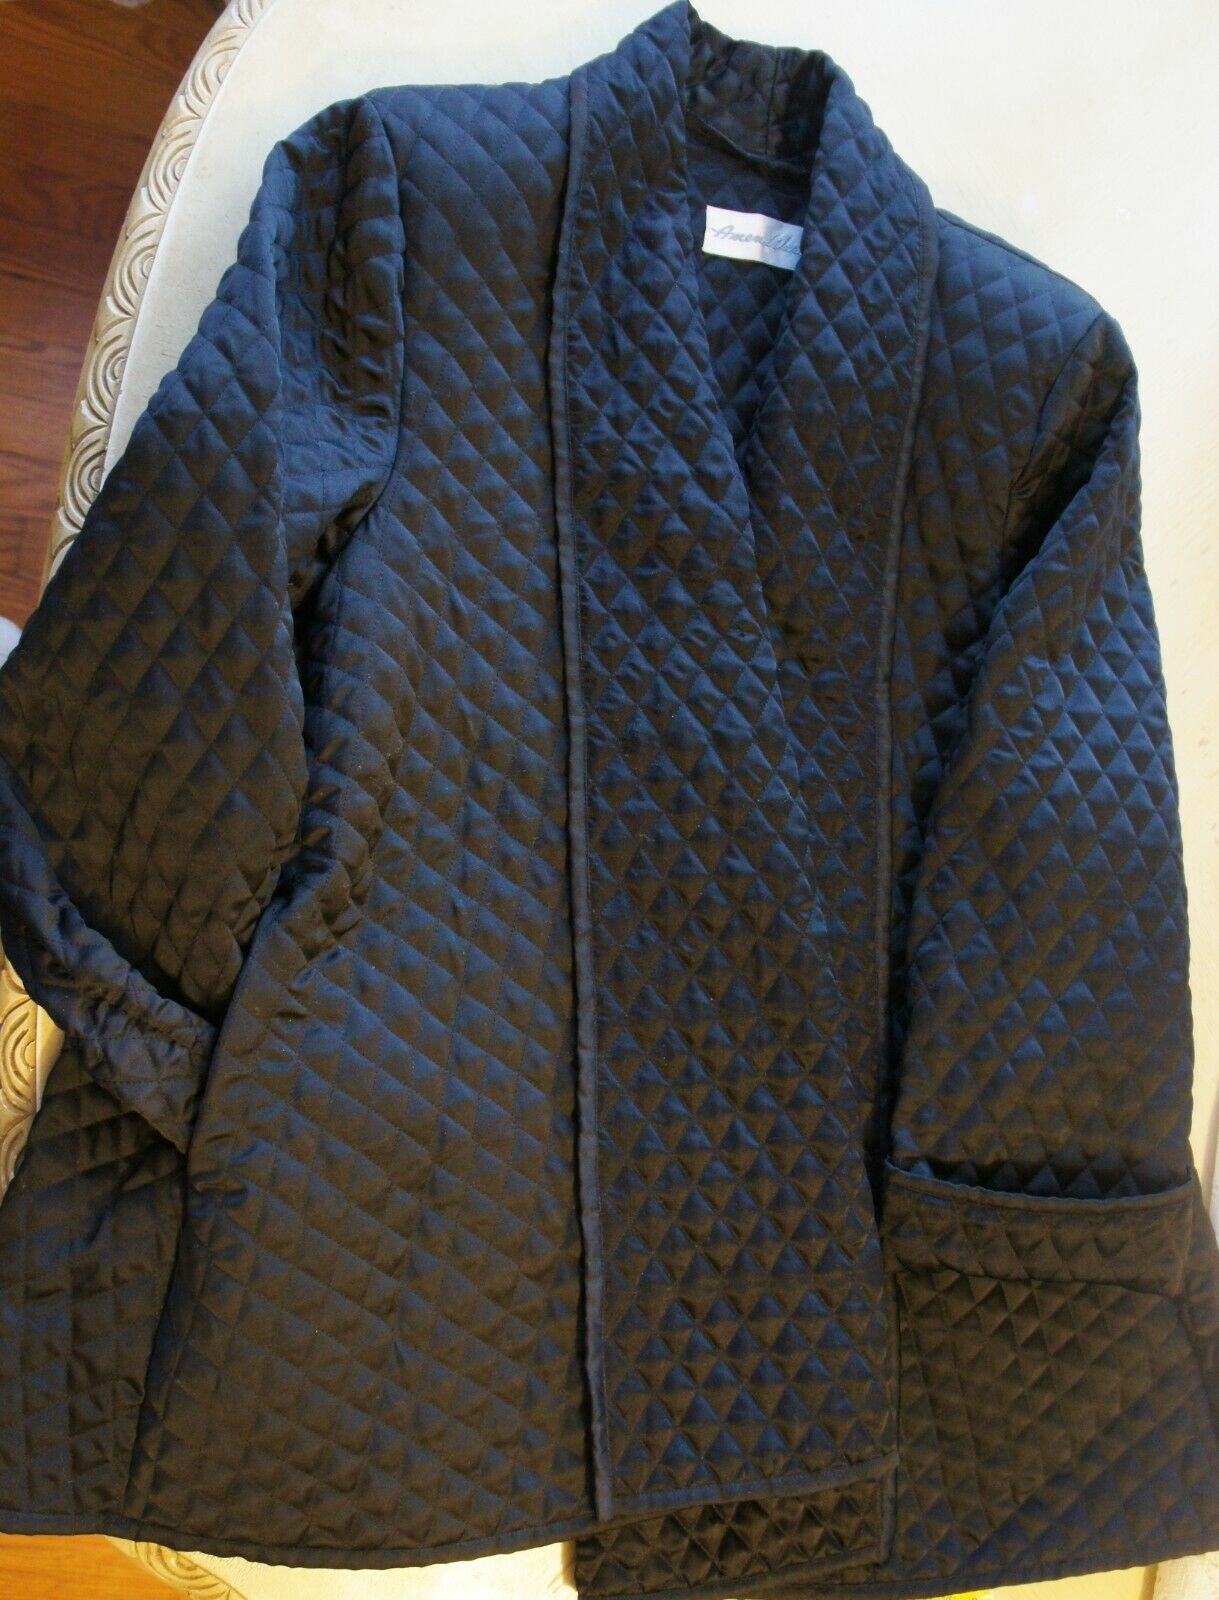 Auth Amen Wardy Black Quilted Open Jacket Sz M - image 5